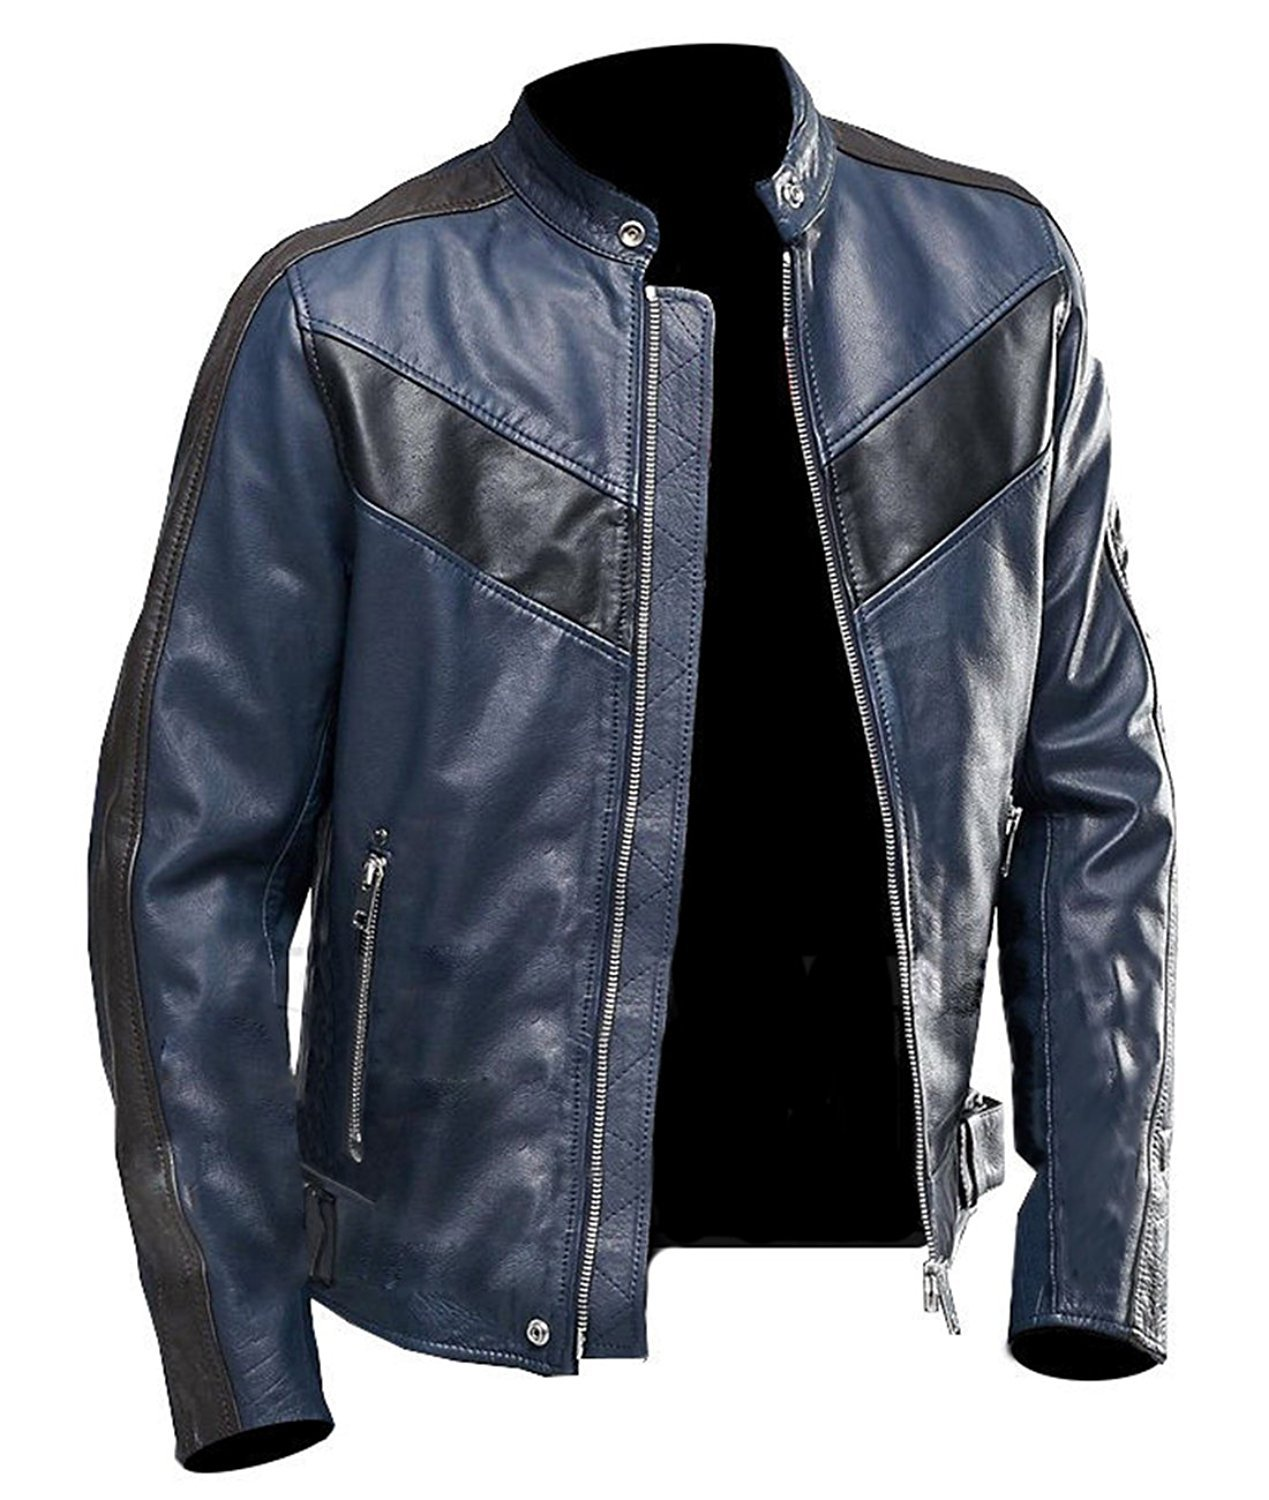 Navy Blue Cafe Racer Brown Vintage Biker Classic Motorcycle Brown Real Leather Jacket (Large - Jacket Chest 48'') by Fashions Maniac